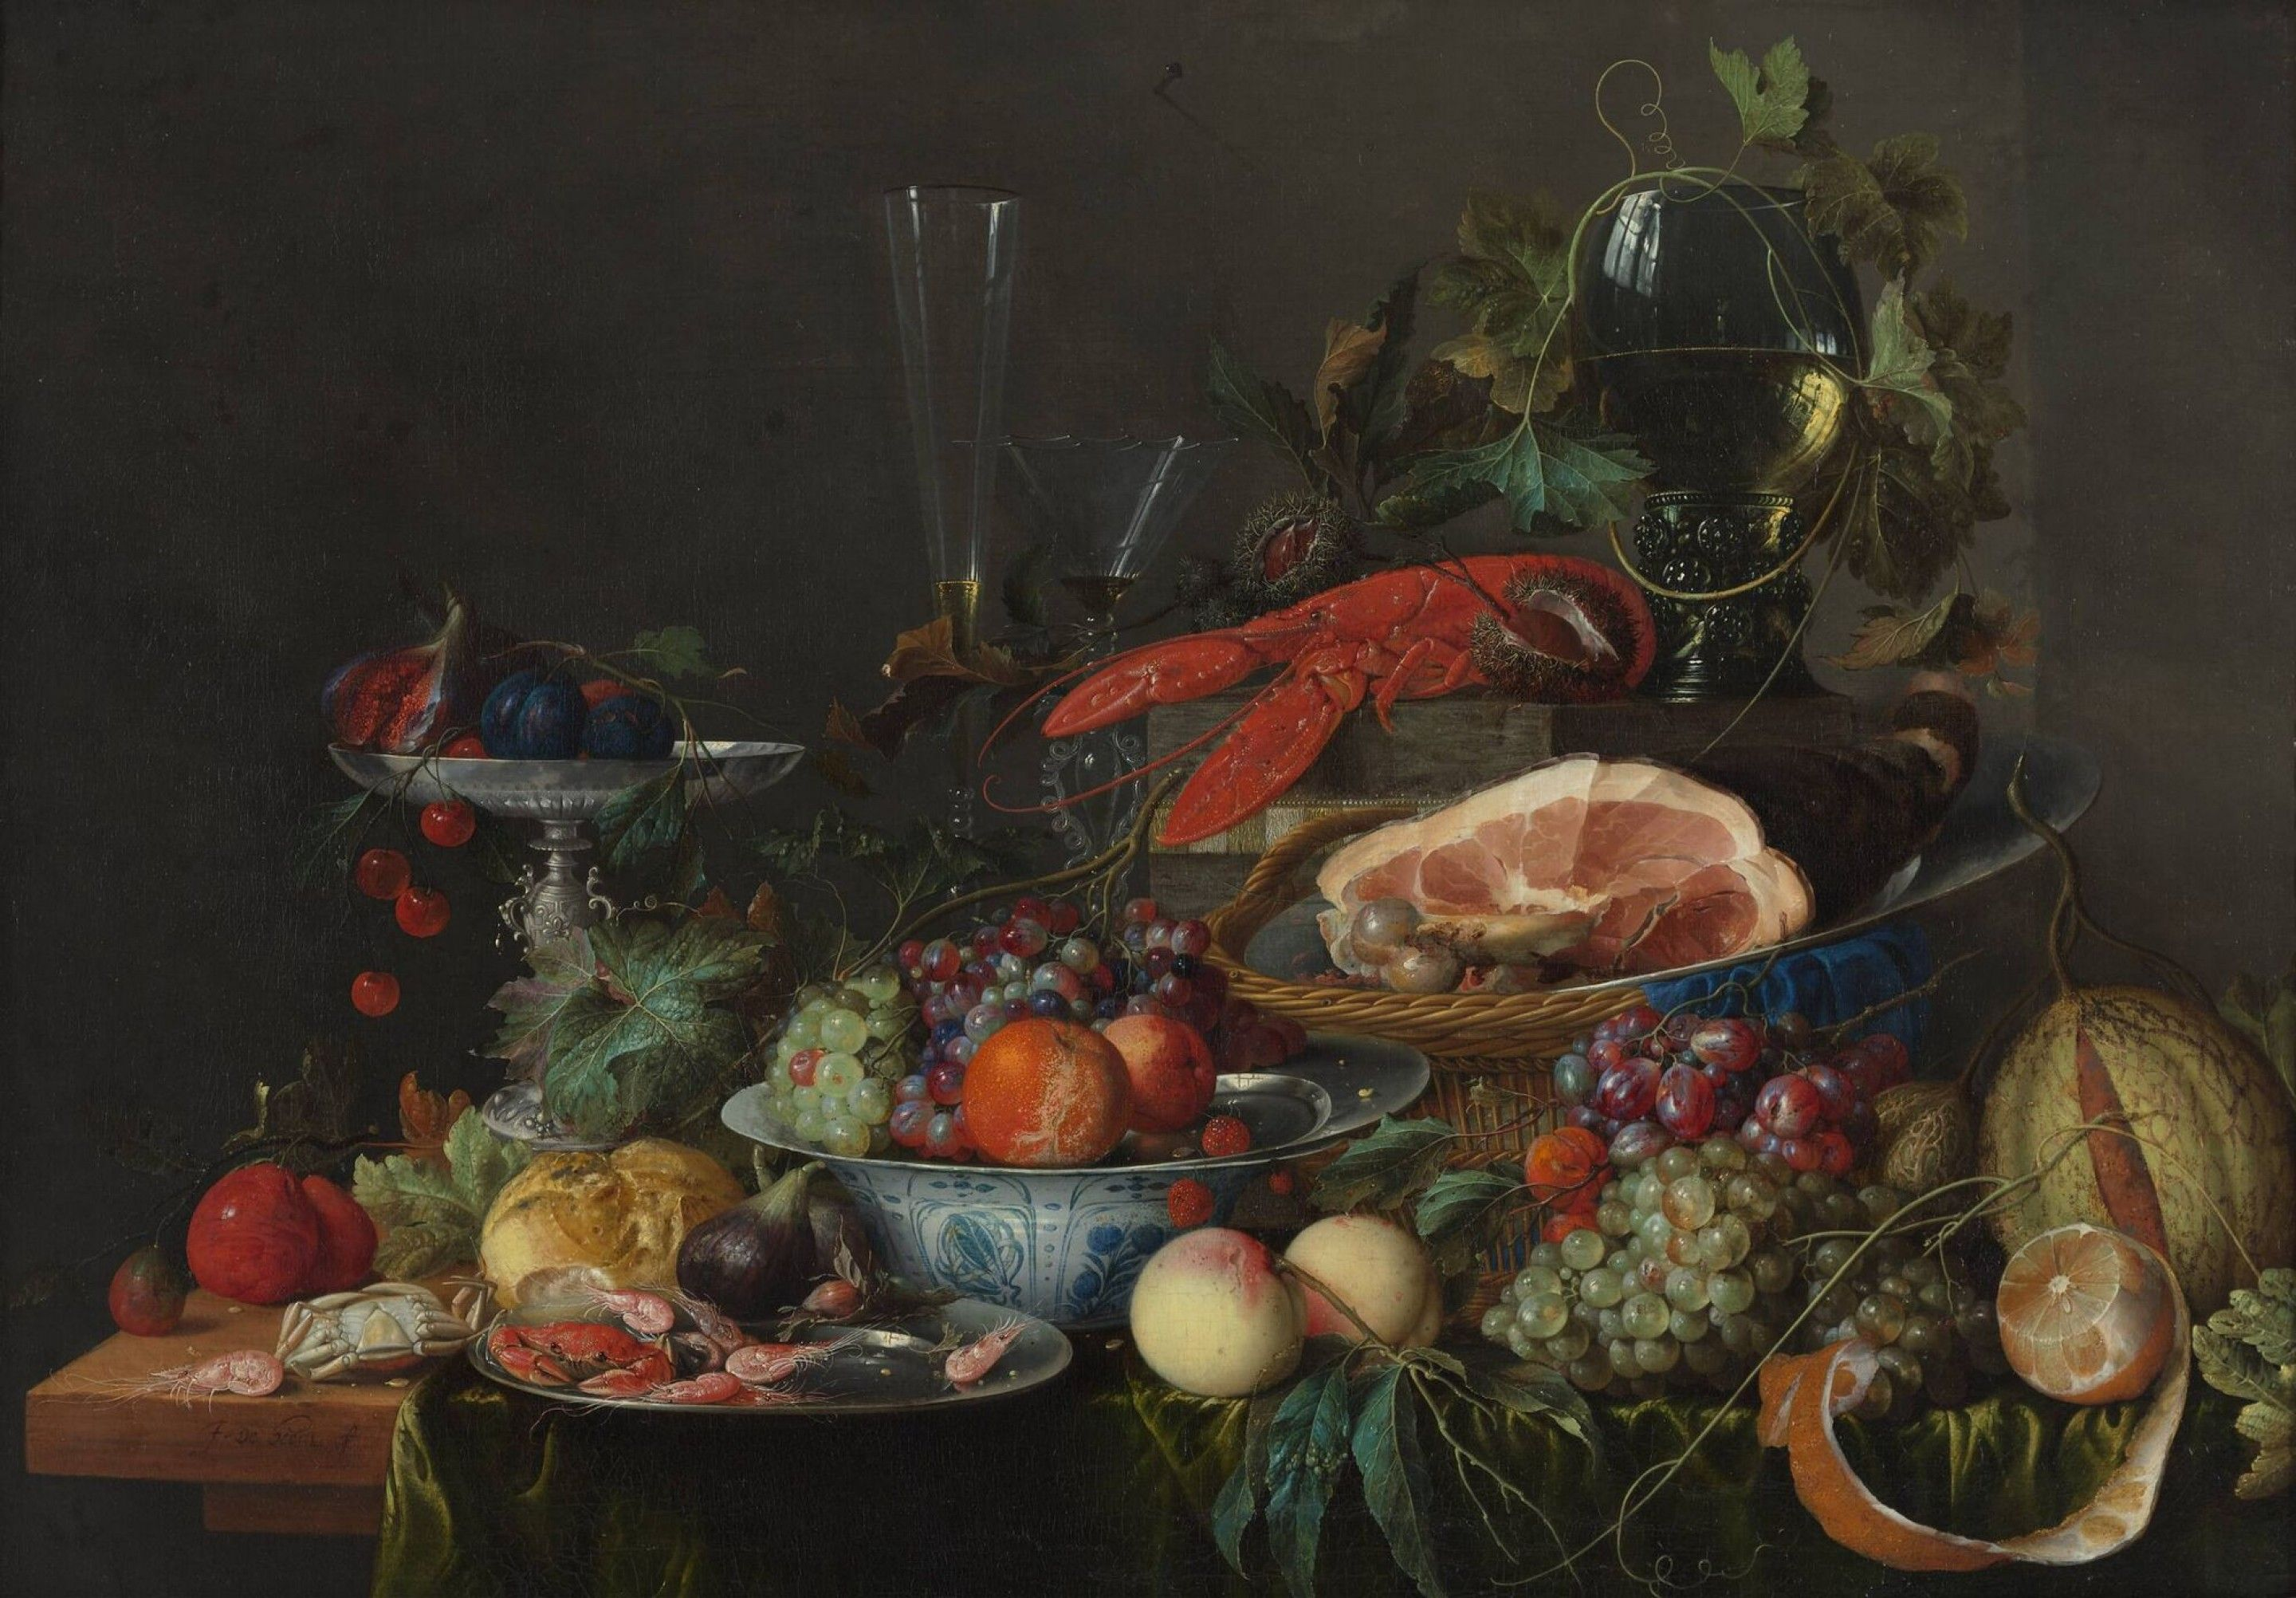 Still life with ham, lobster and fruit Jan Davidsz. de Heem, c. 1653 ...